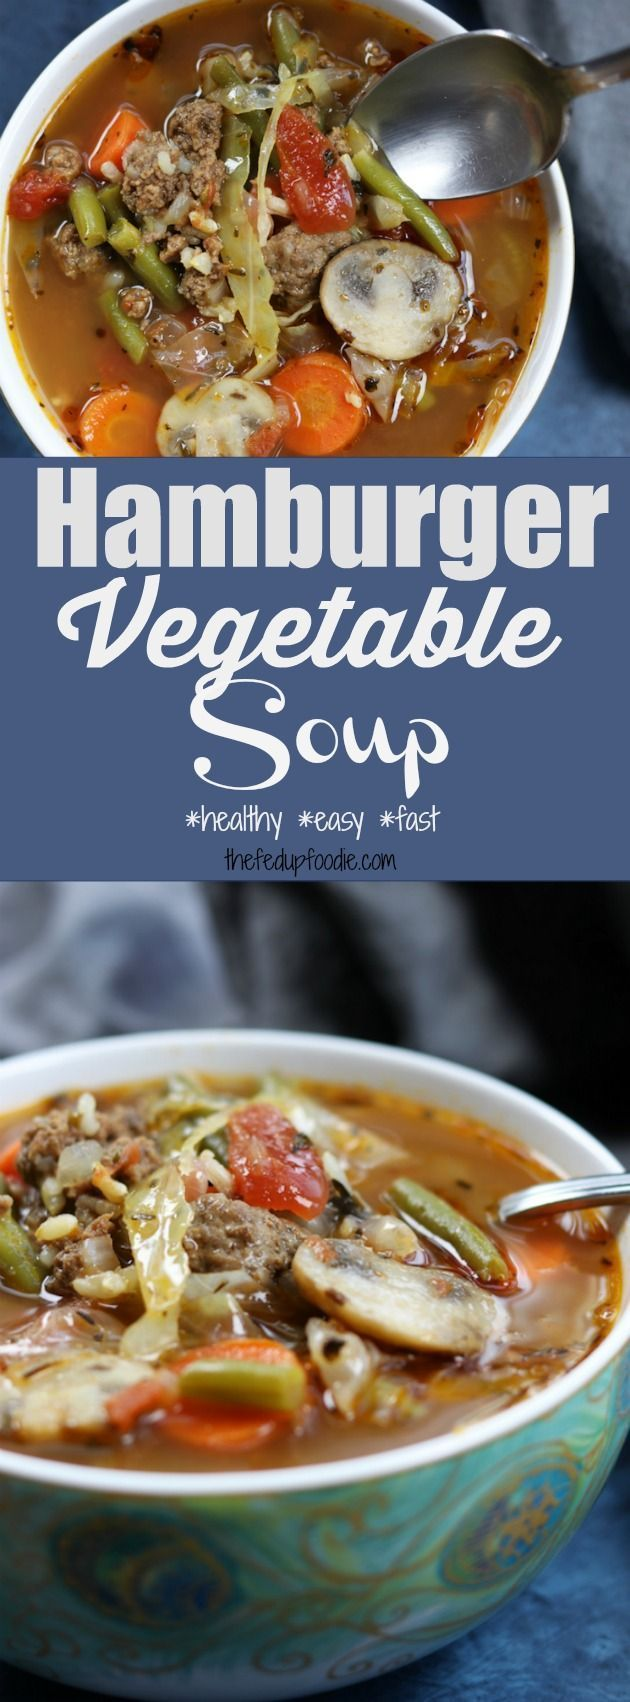 Hamburger Vegetable Soup ~ a heartwarming and satisfying meal packed full of good for you veggies!